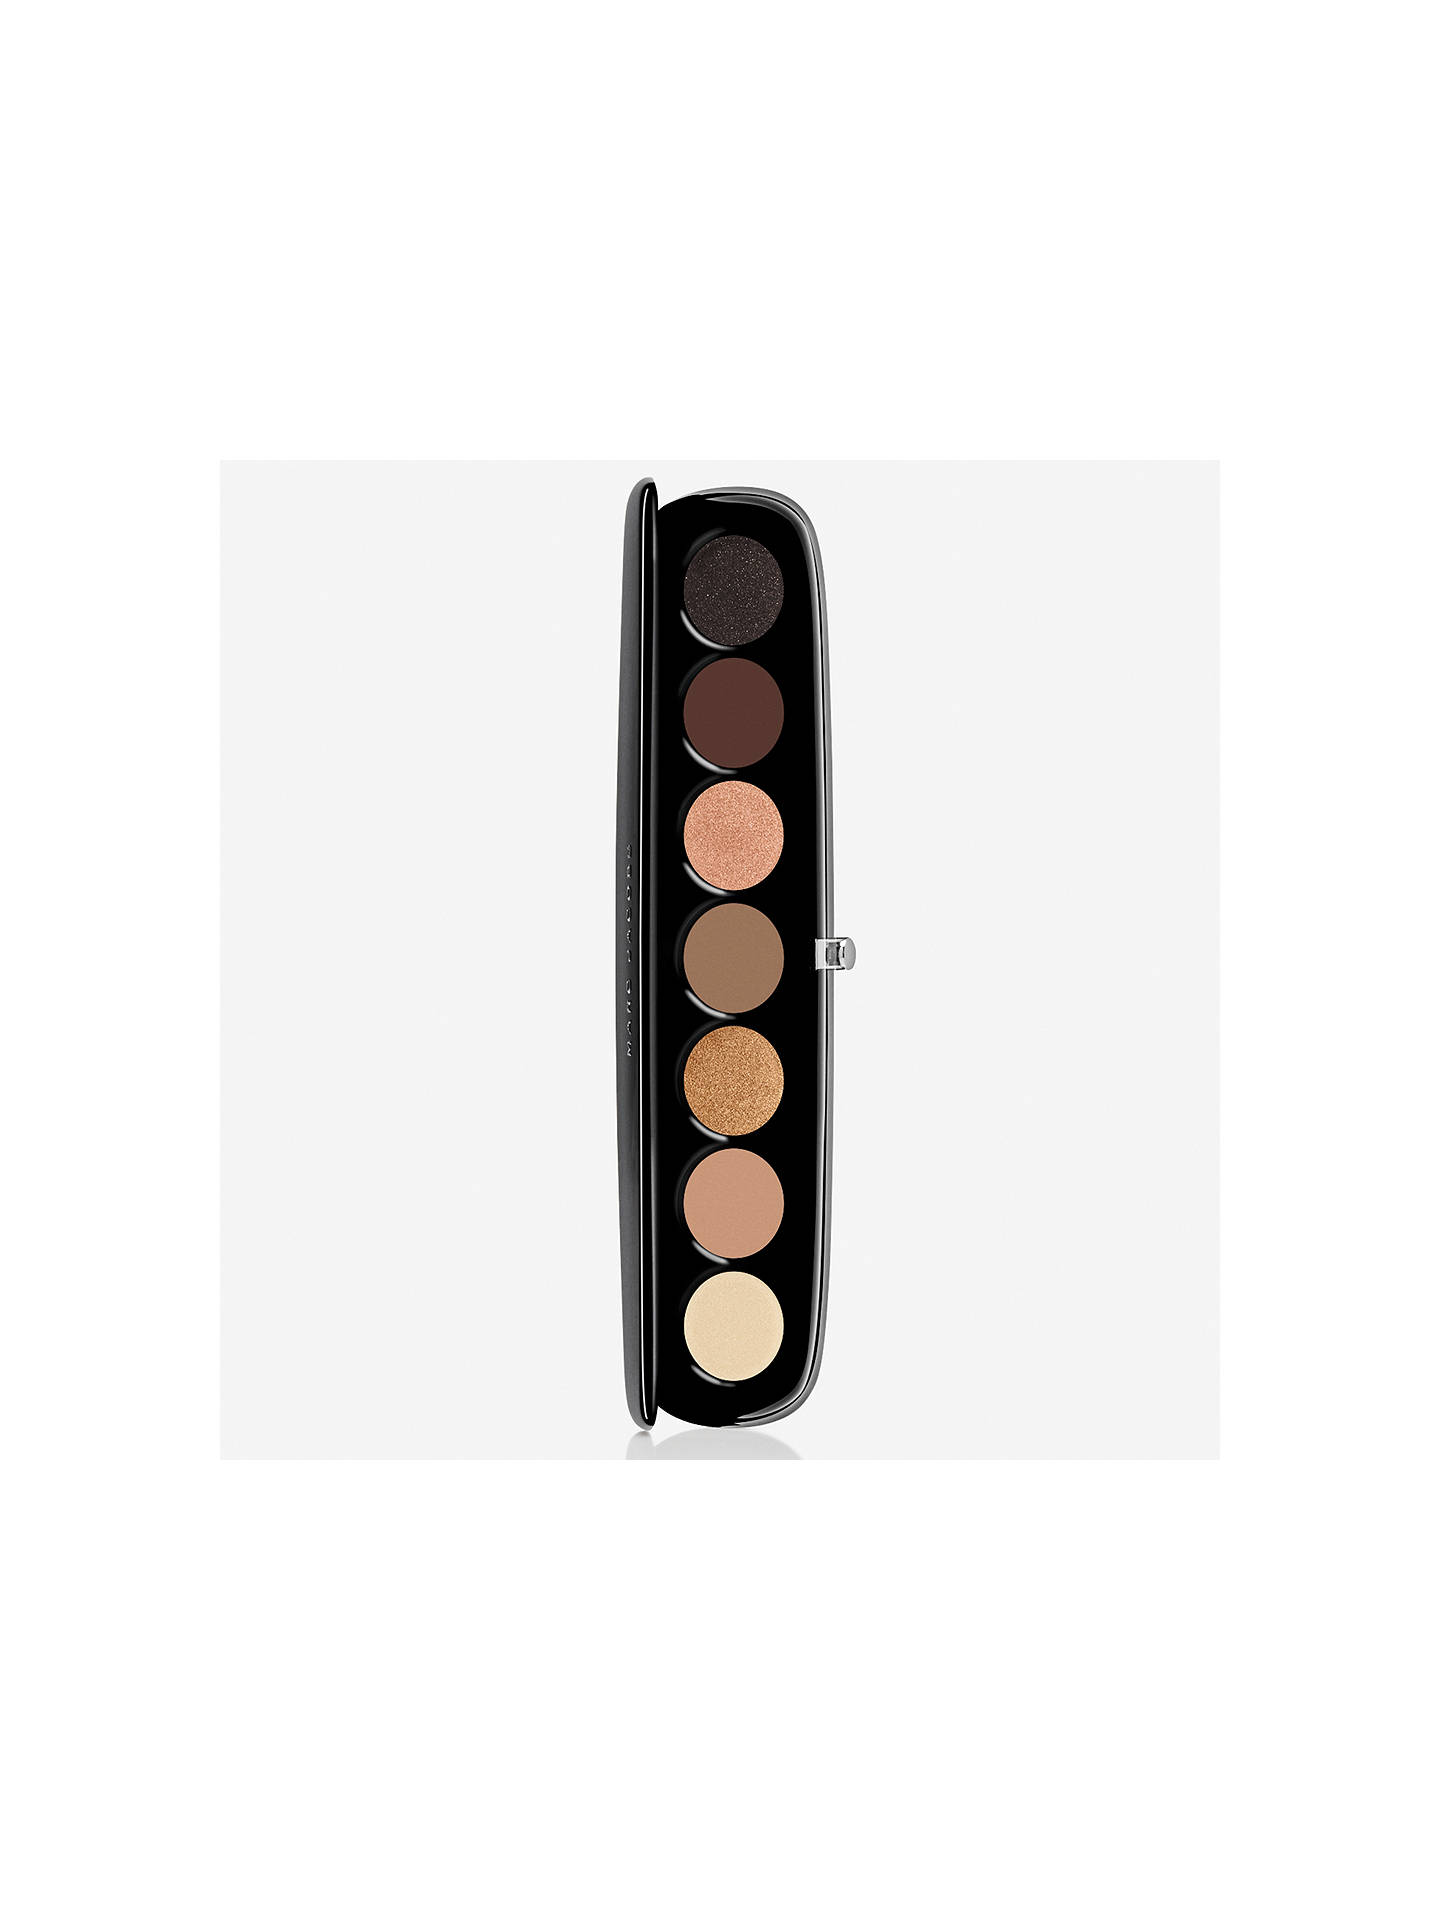 BuyMarc Jacobs Eye-Conic Longwear Eyeshadow Palette, Glambition Online at johnlewis.com